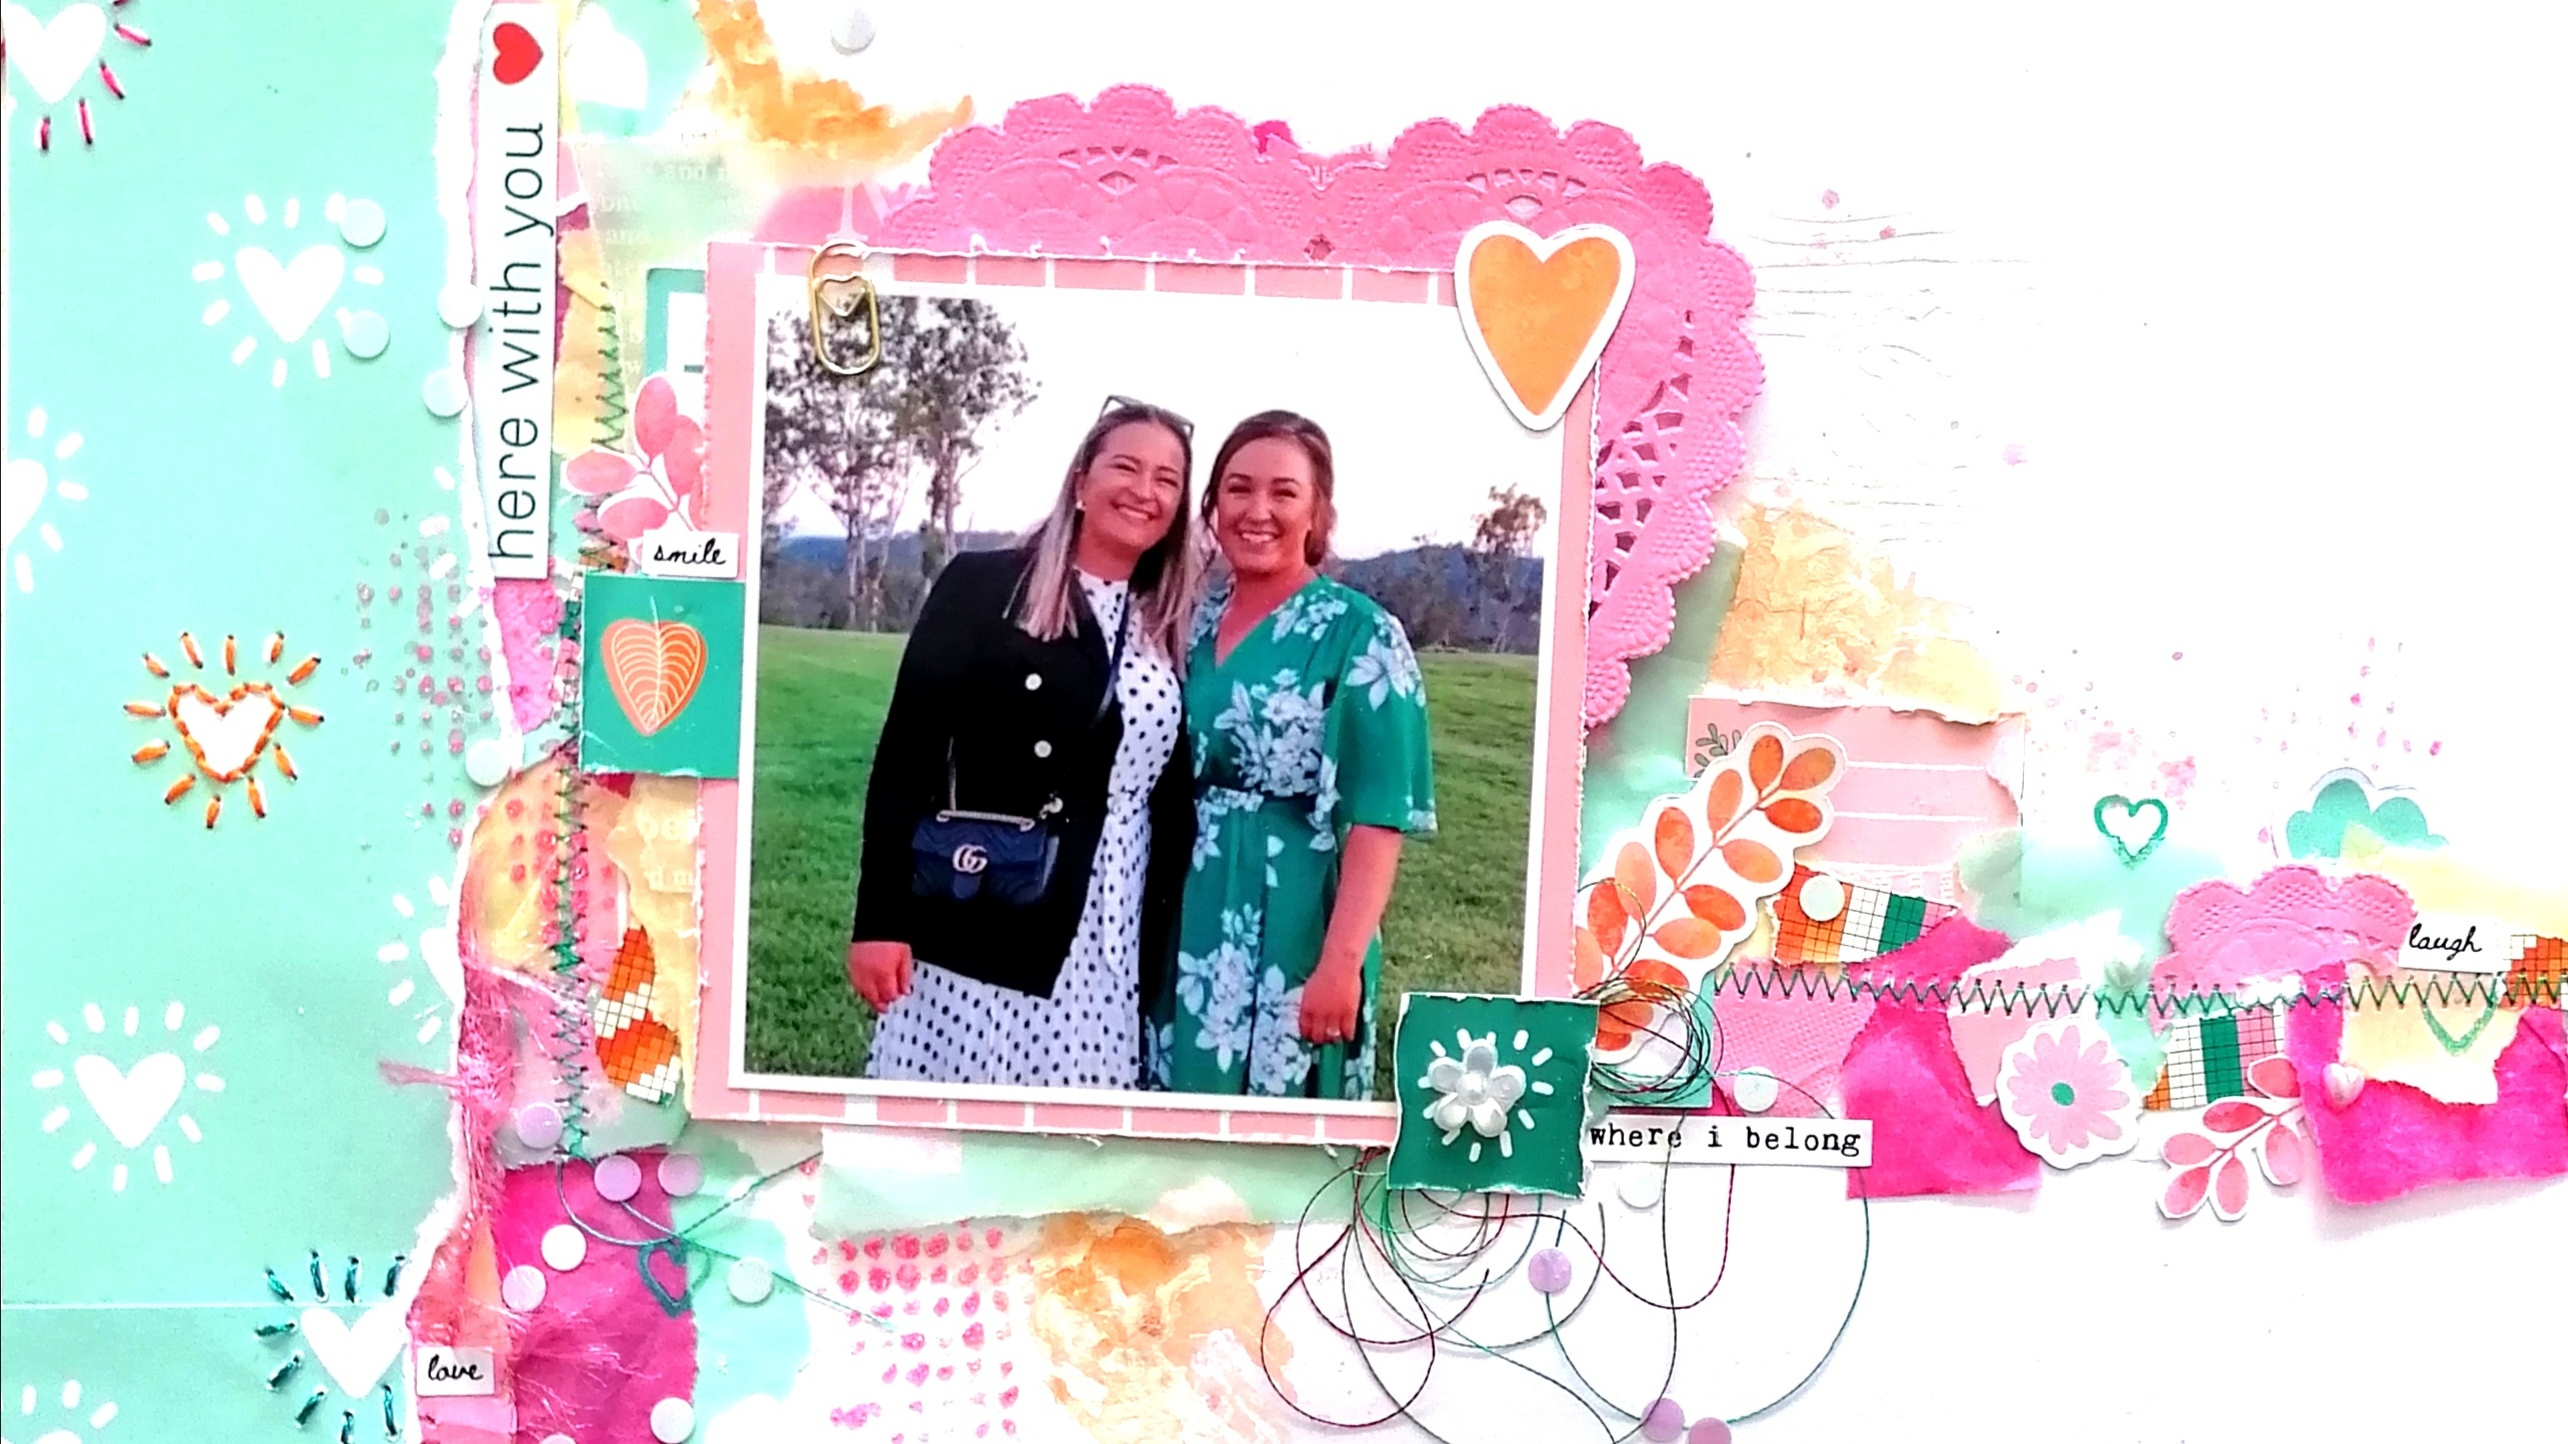 Here with you! – Scrapbook layout by Philippa McCray